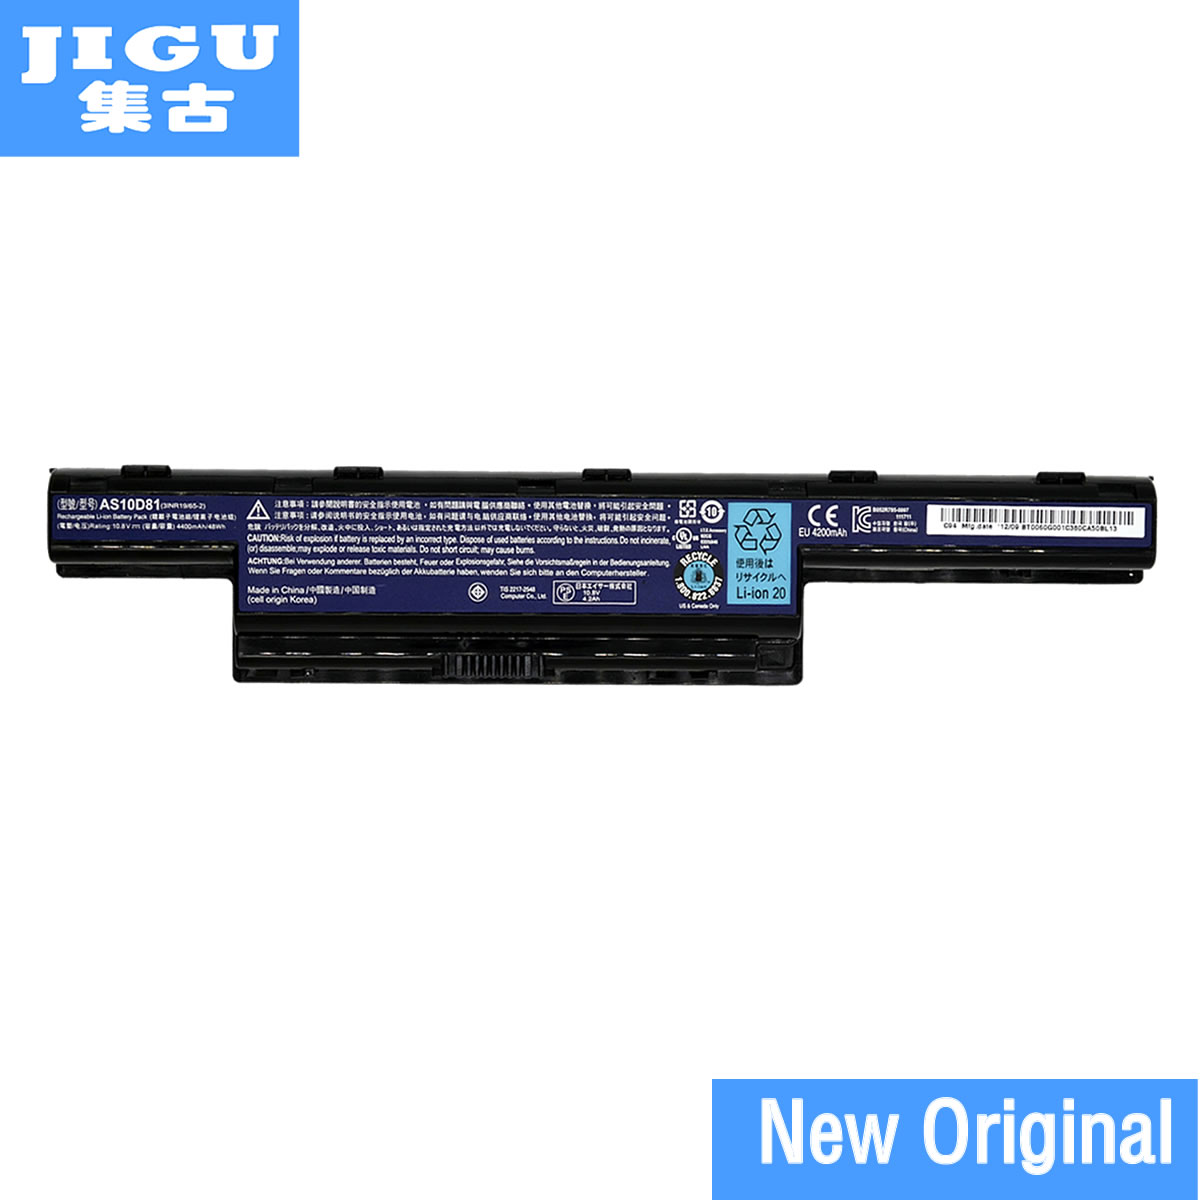 JIGU Acer Aspire V3 5741 5742 5750 5551G 5560G 5741G 5742G 5750G AS10D31 AS10D51 AS10D61 AS10D71 AS10D75 image